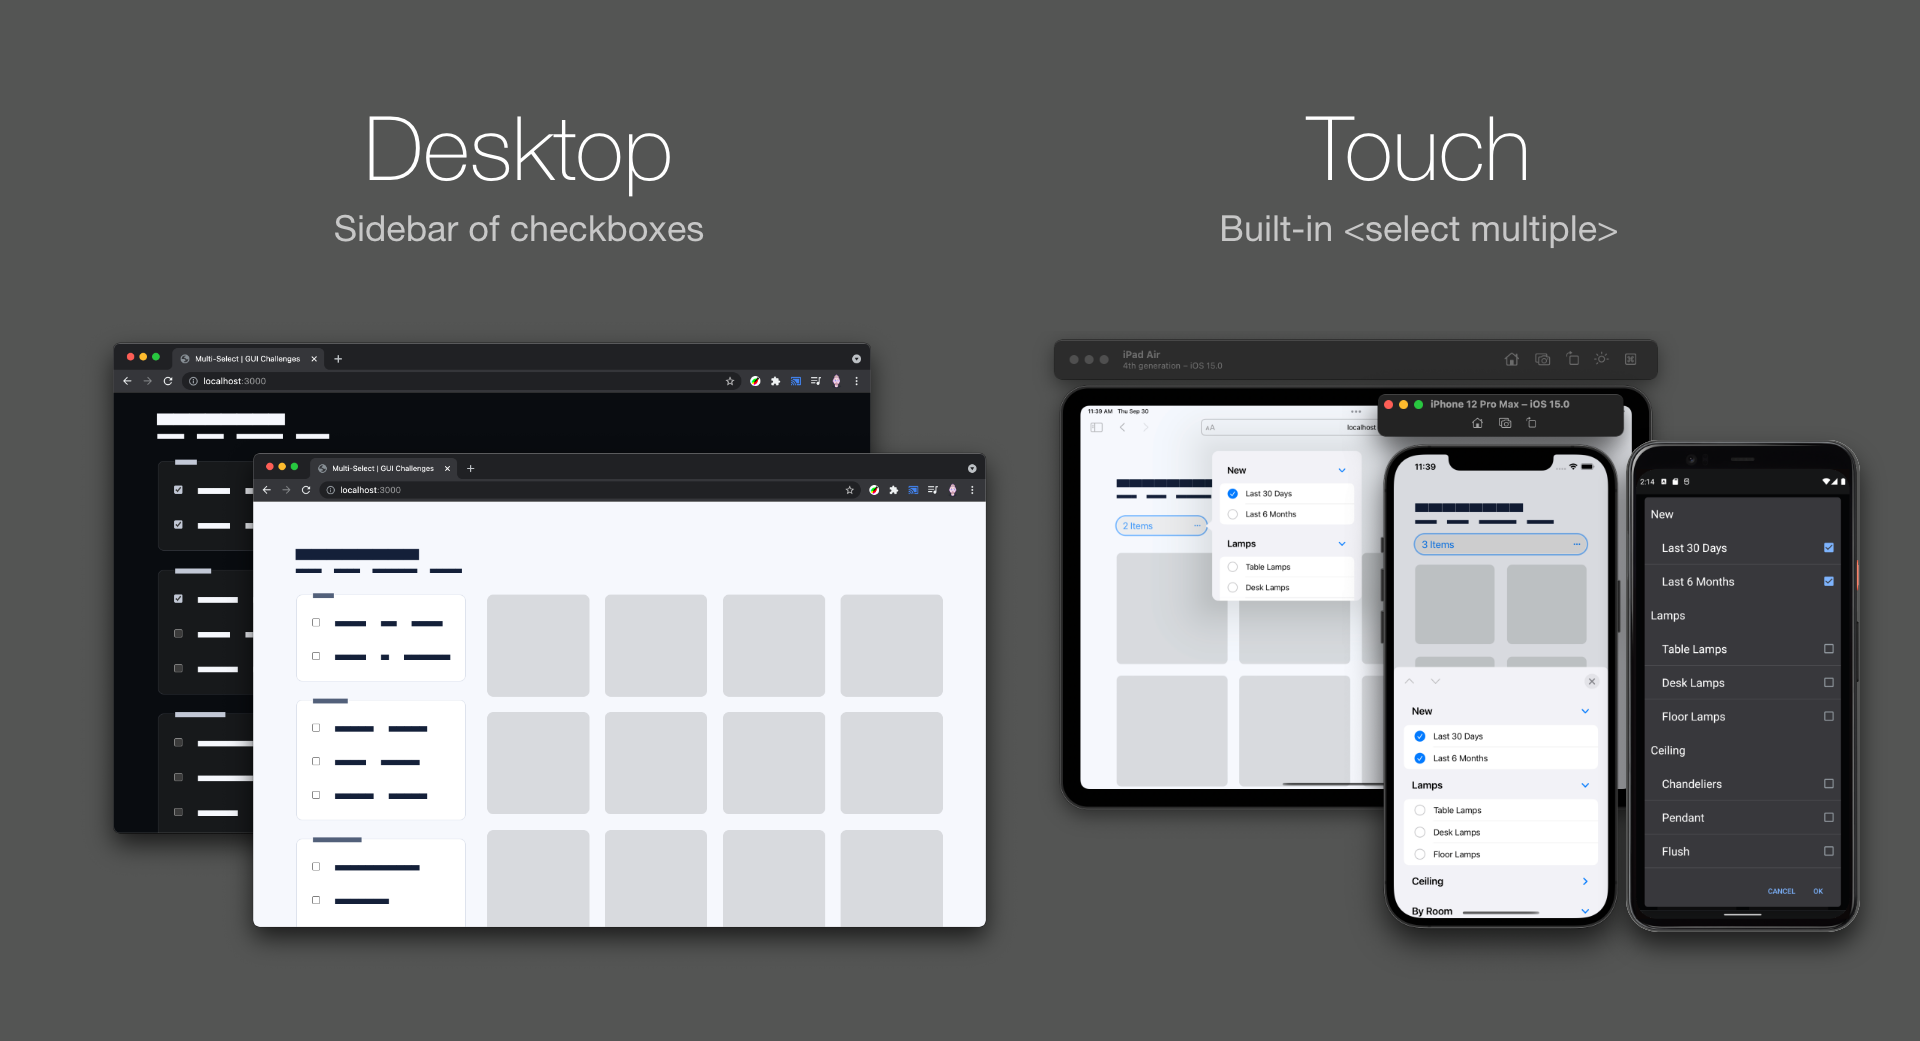 Comparison screenshot showing desktop light and dark with a sidebar of checkboxes vs mobile iOS and Android with a multi-select element.